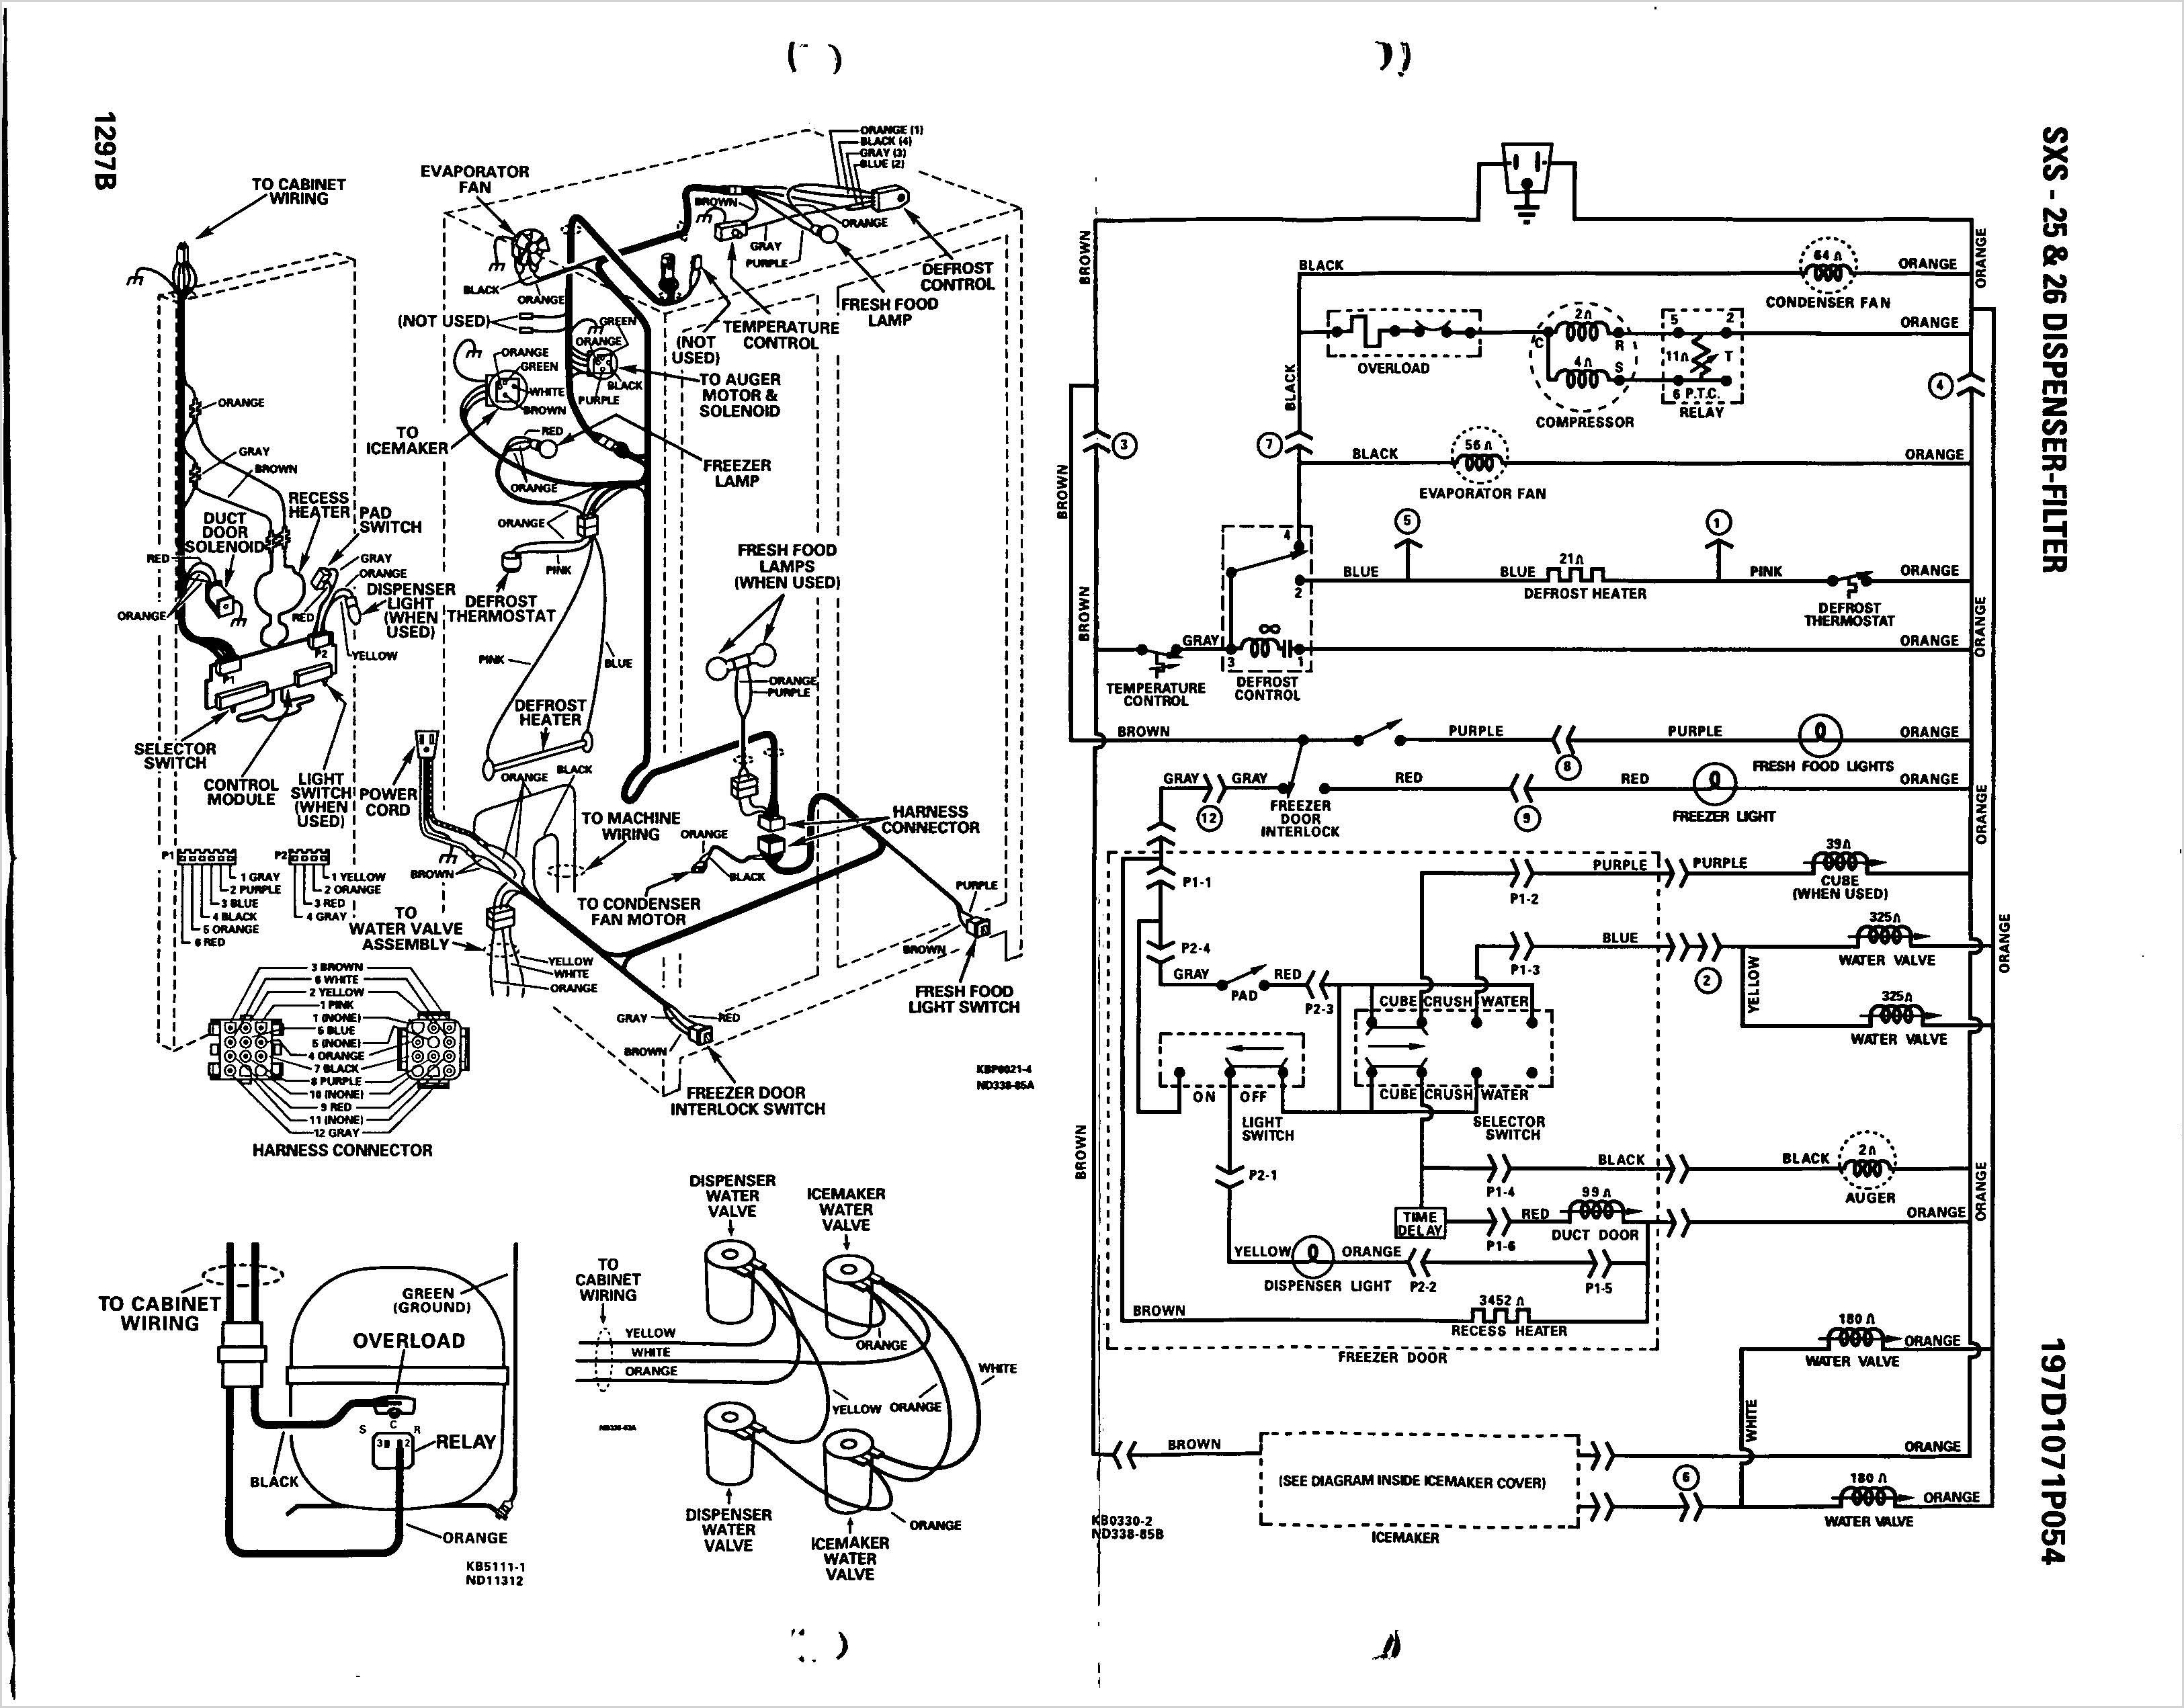 wiring diagram for ge profile stove ge refrigerator wiring schematic | free wiring diagram wiring diagram for ge refrigerator